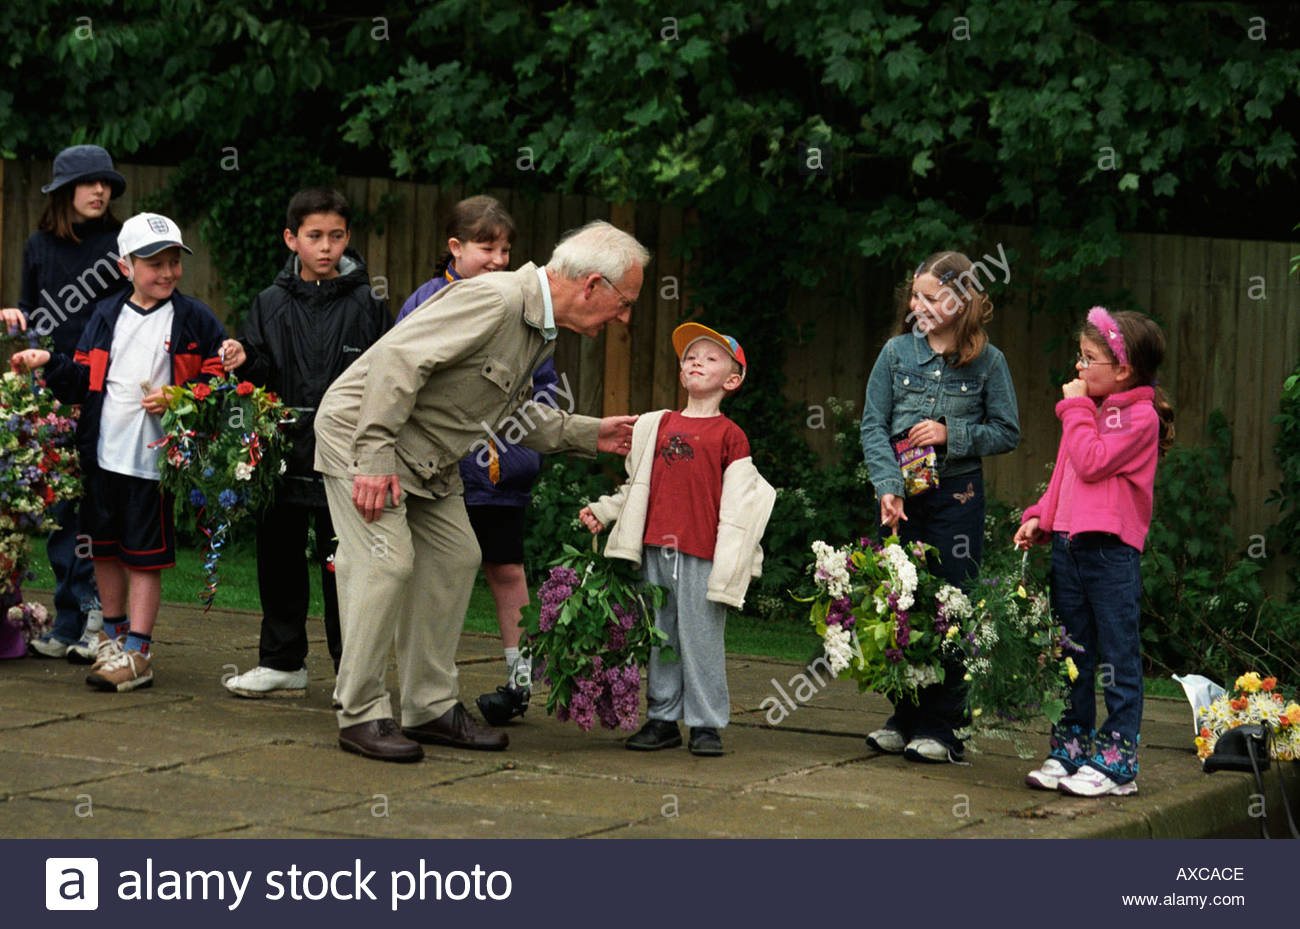 Youngsters rehearsing for the arrival of of the May Queen in Moulton, UK - Stock Image